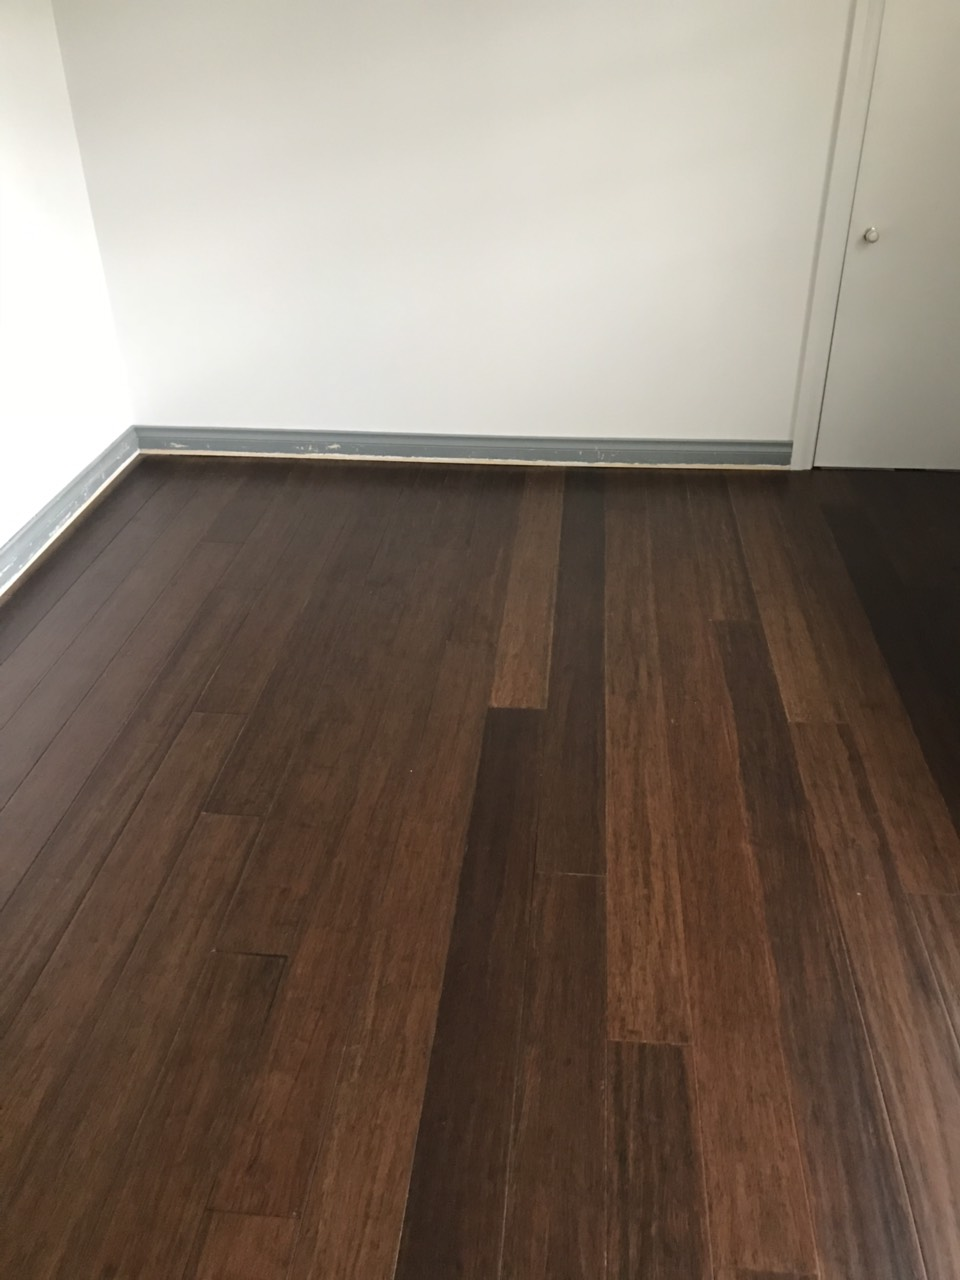 Bamboo floor Milano – Handcraped – Matt